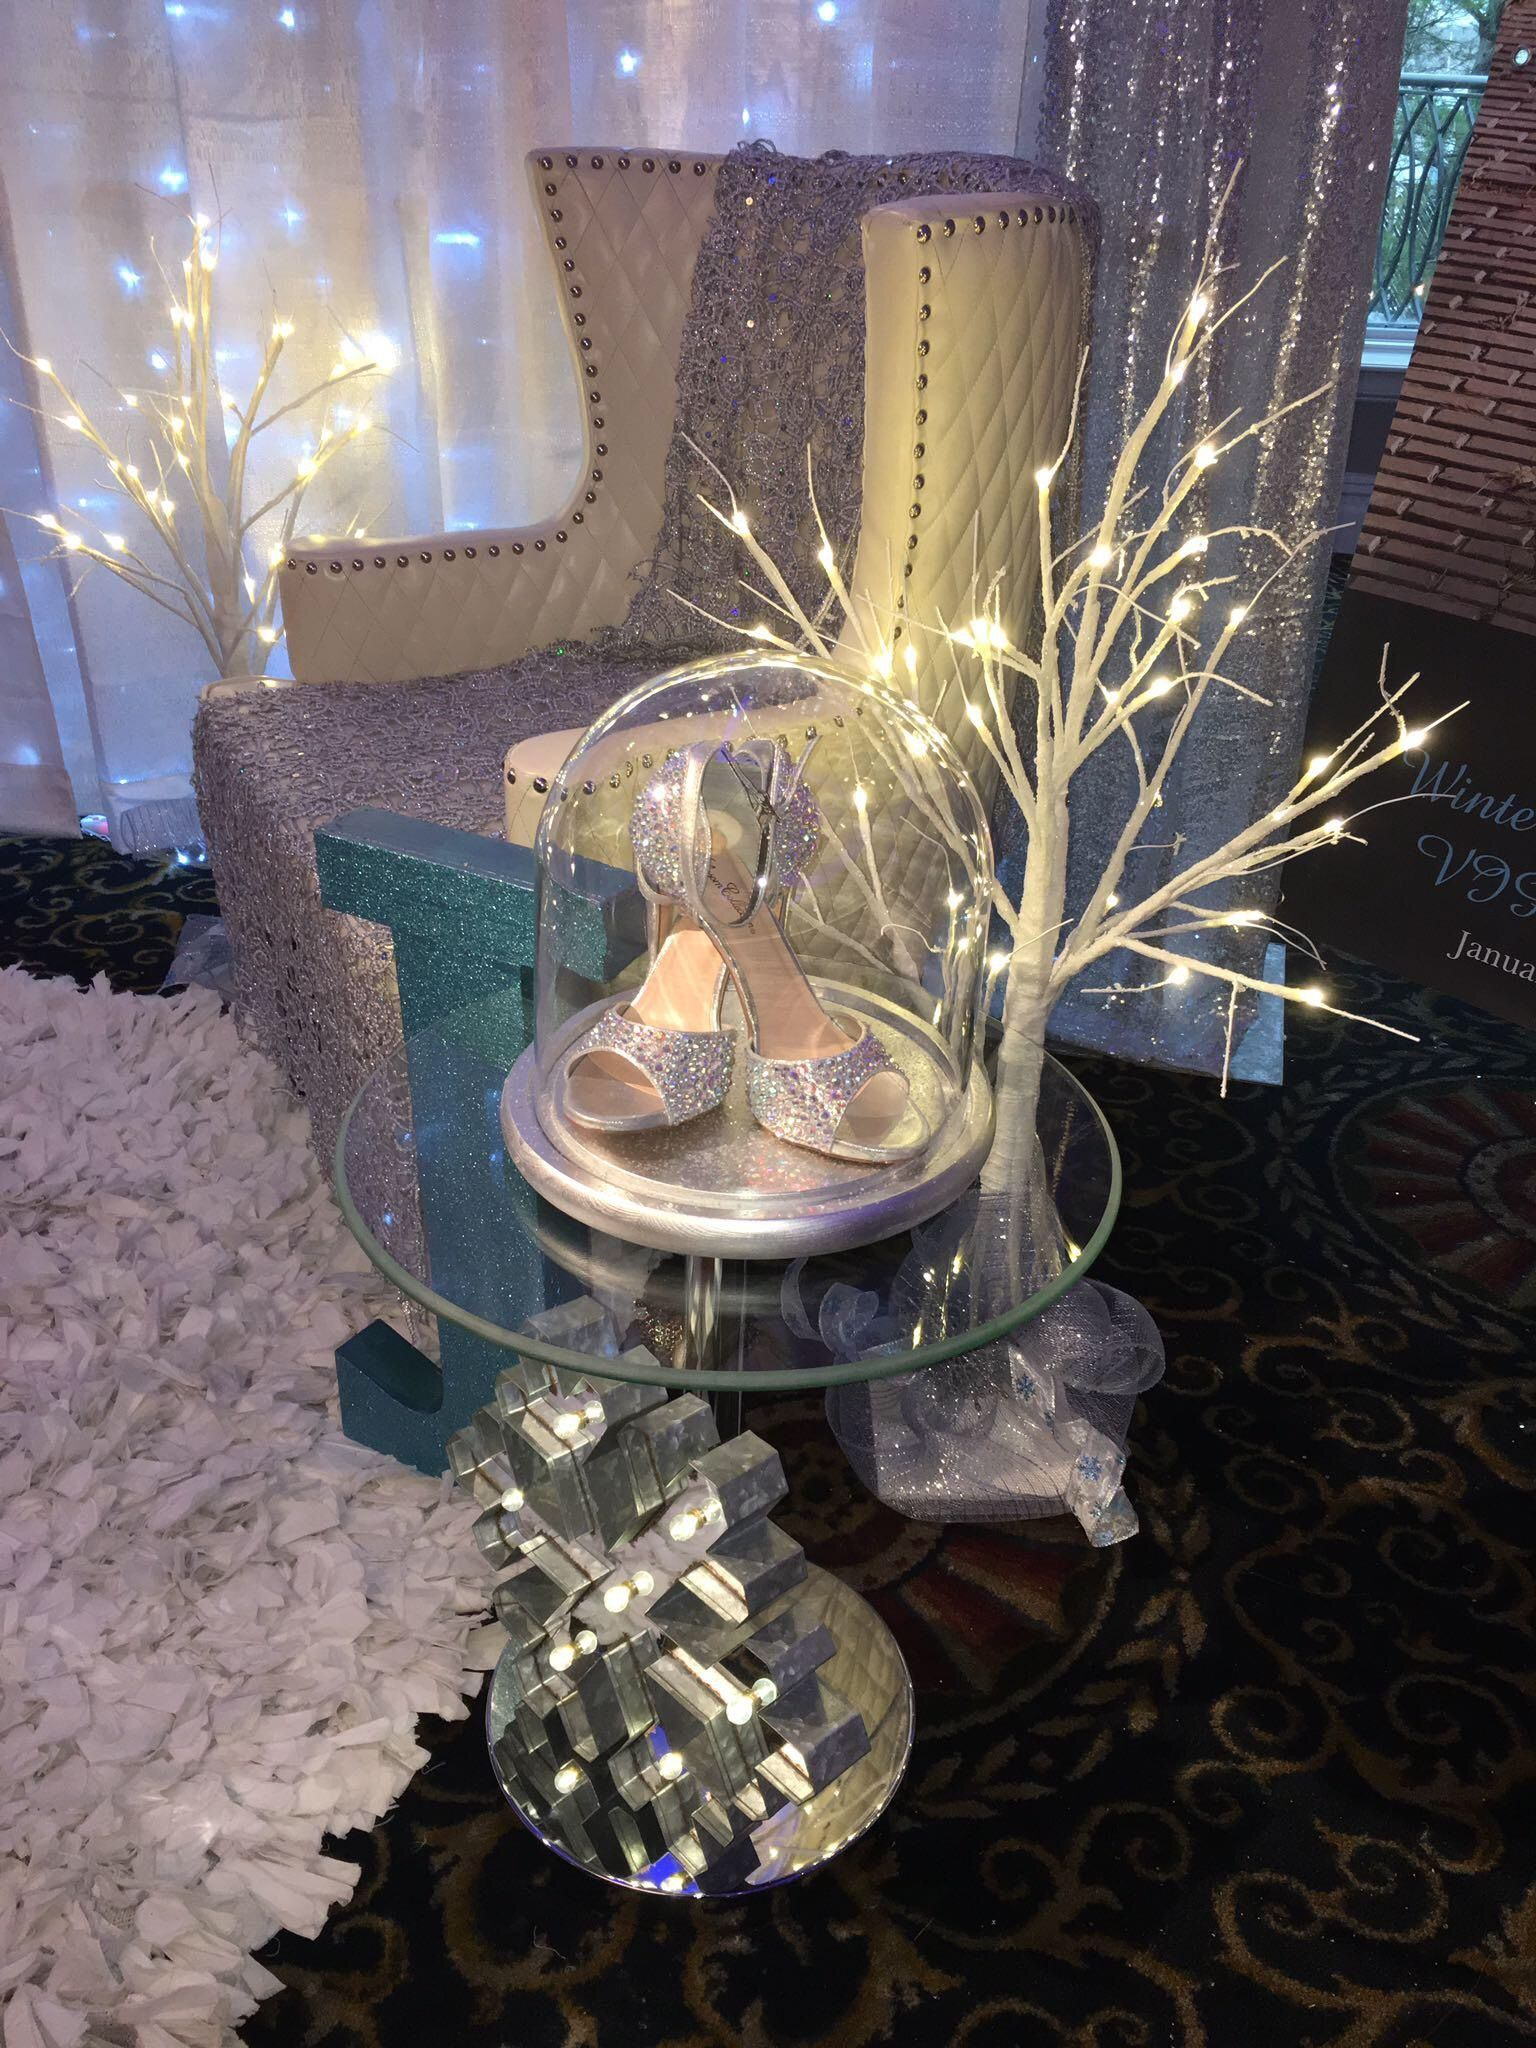 dress - Wonderland Winter decorations for sweet 16 pictures video